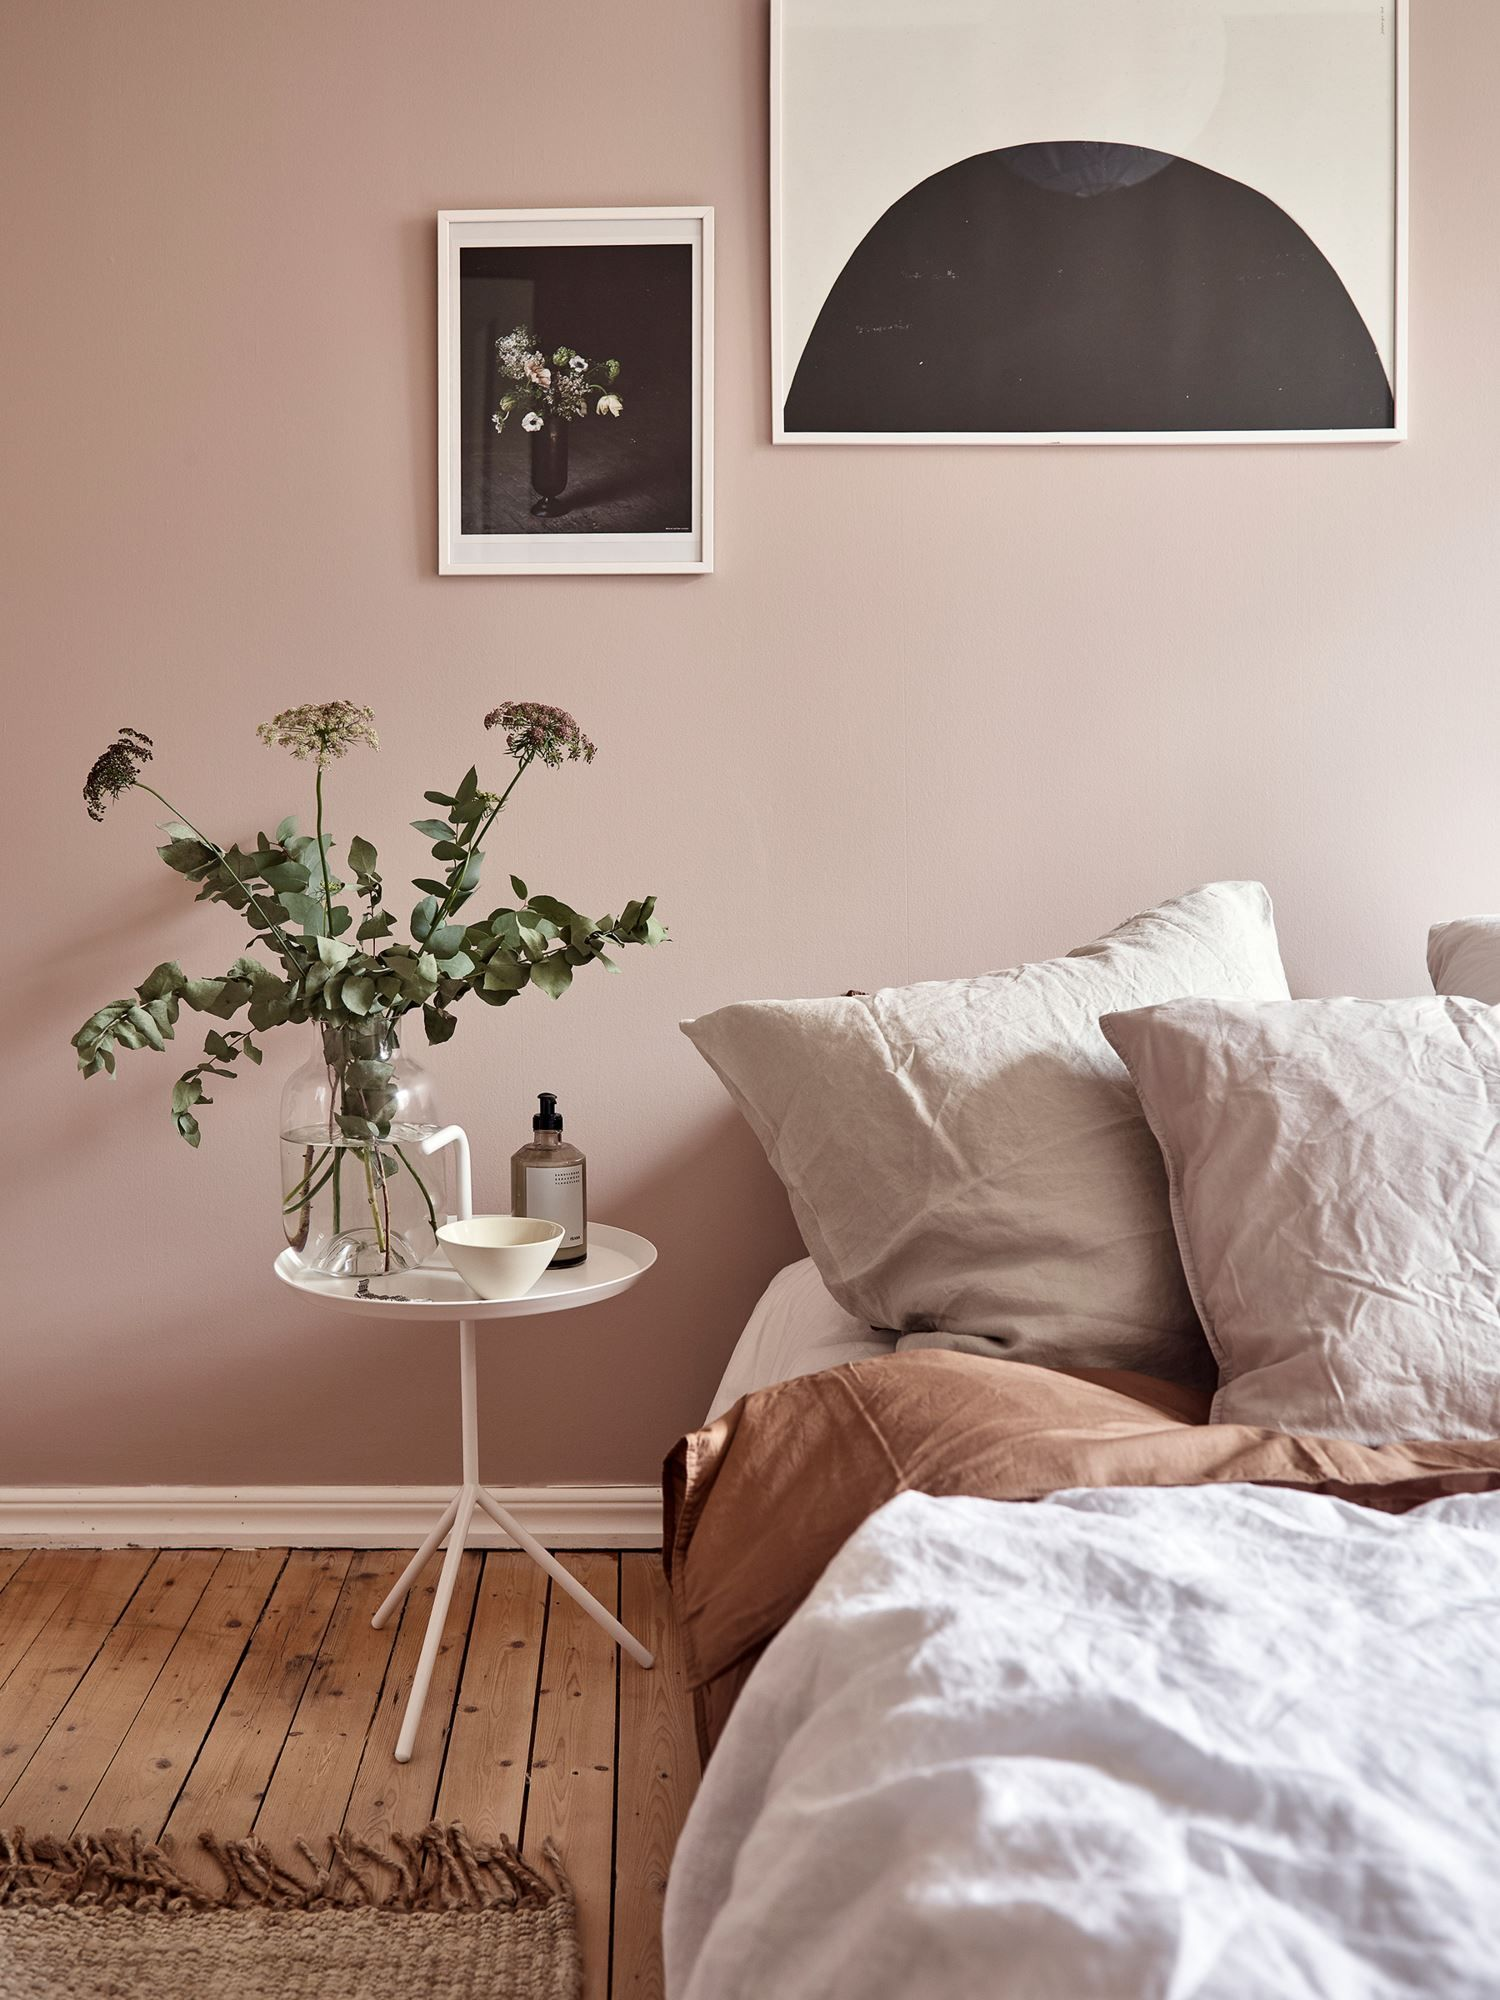 While I M Taking Almost Up To A Year To Decide On A Very Light And Safe Choice Grey To Paint The Li Dusty Pink Bedroom Pink Bedroom Walls Bedroom Wall Colors